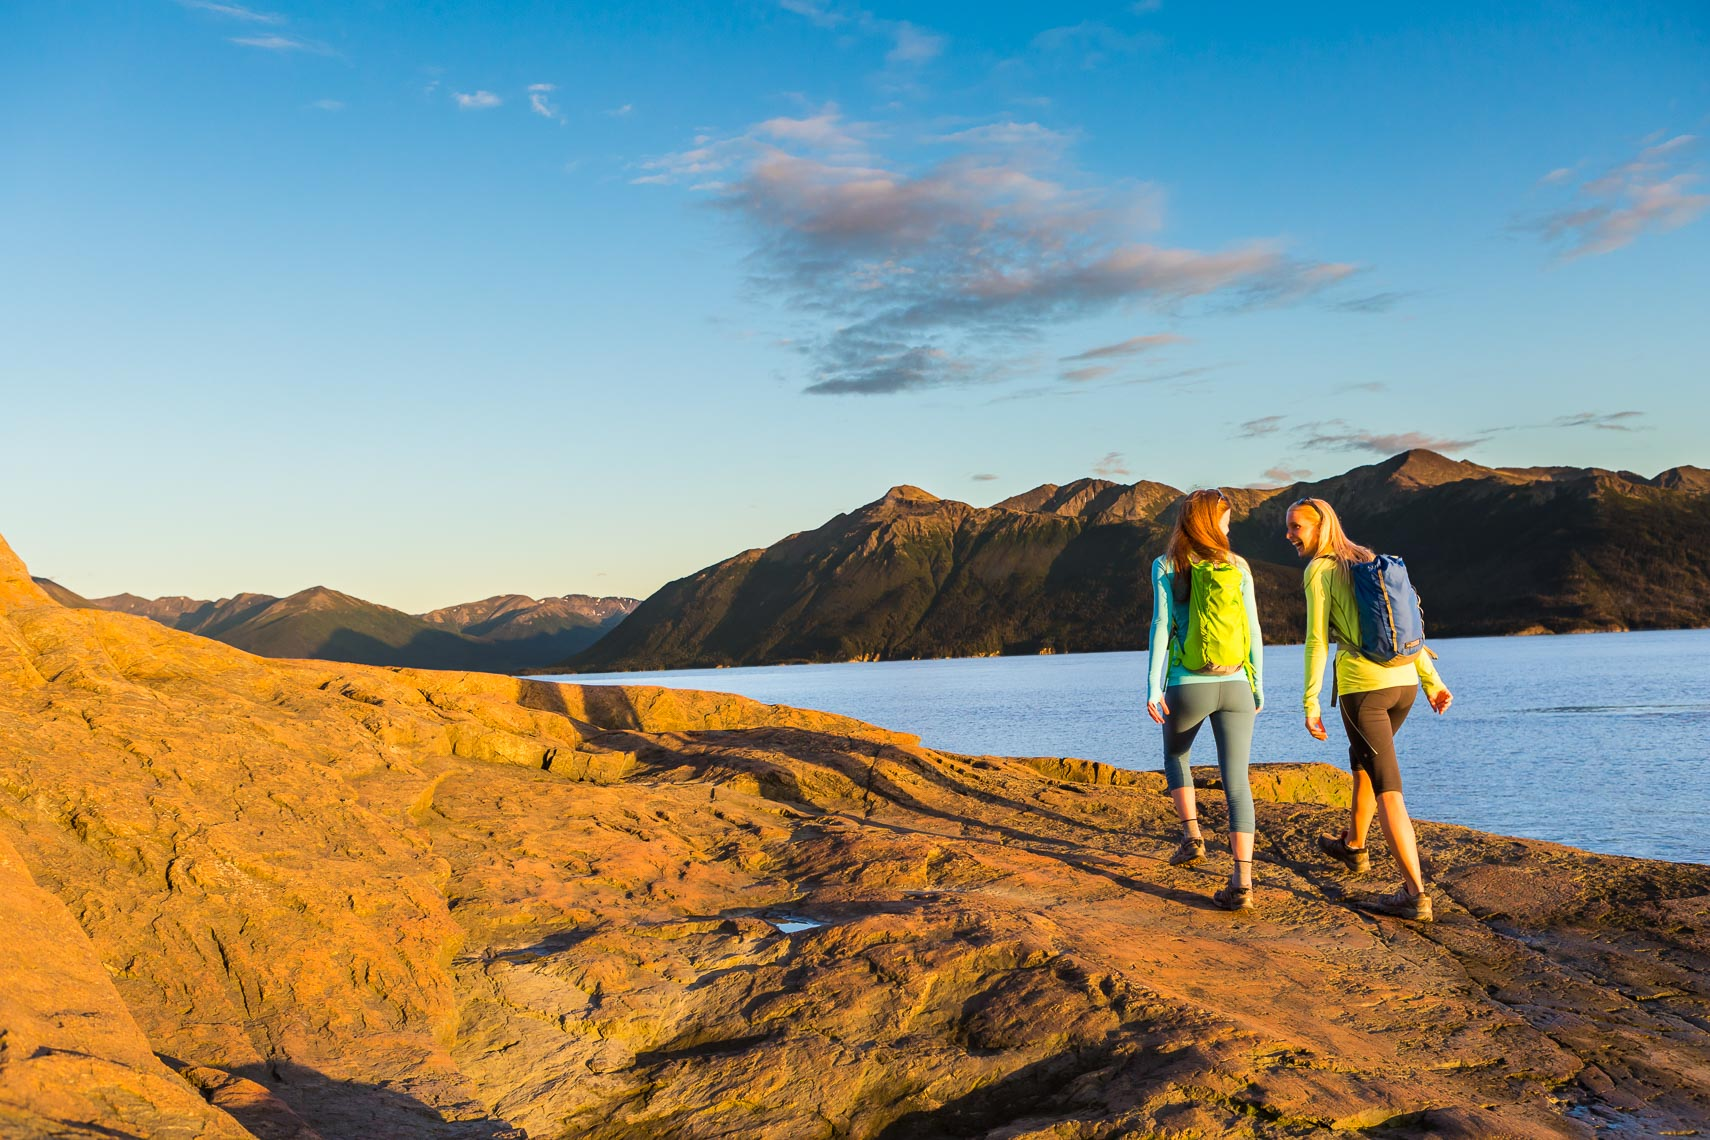 Hiking Turnagain Arm Alaska Lifestyle | Photographer Michael DeYoung